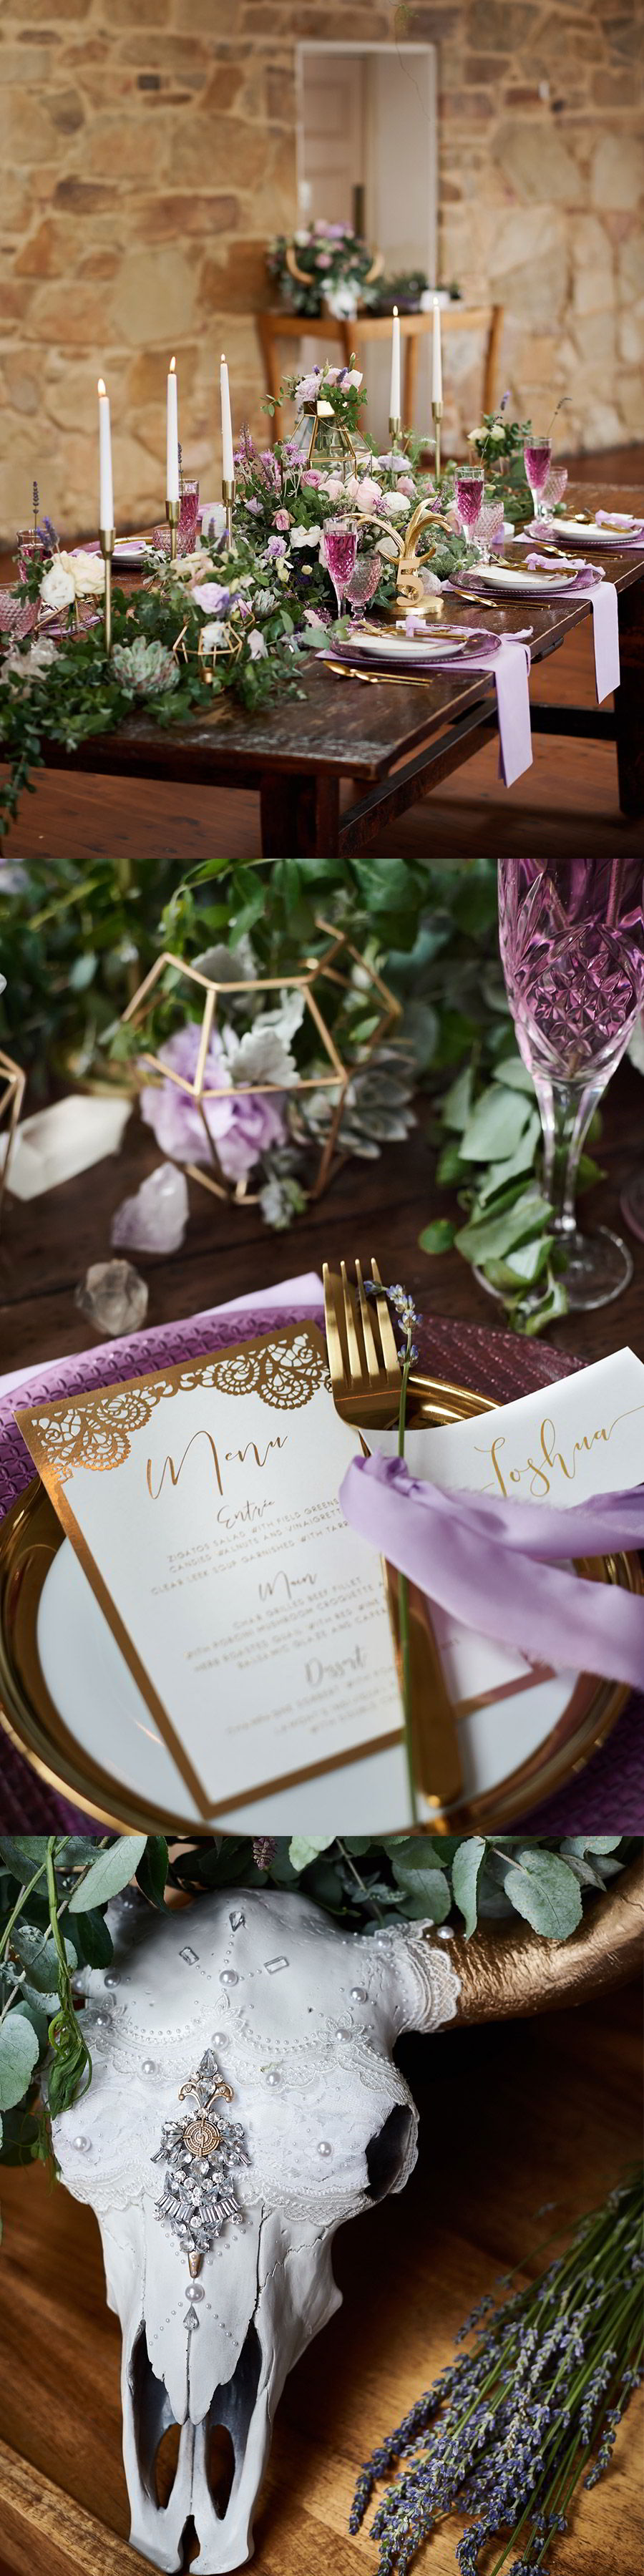 adorn invitation romantic bohemian luxury purrple gold wedding inspiration photo shoot sault daylesford